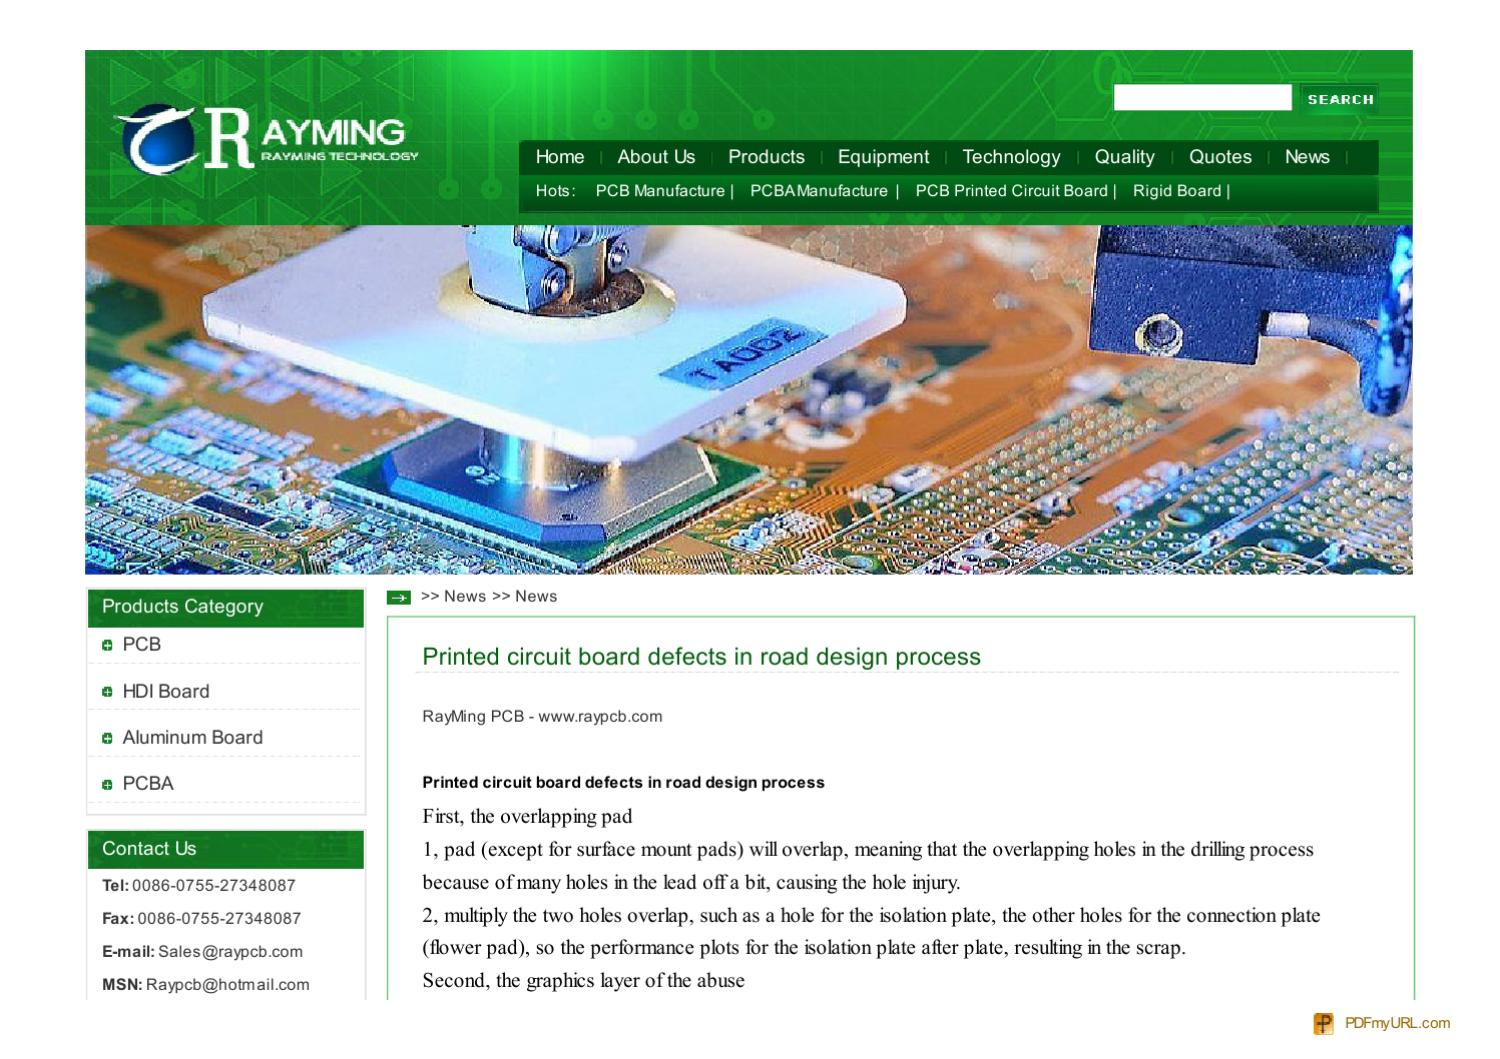 www raypcb com-News-Printed-circuit-board-defects-in-road